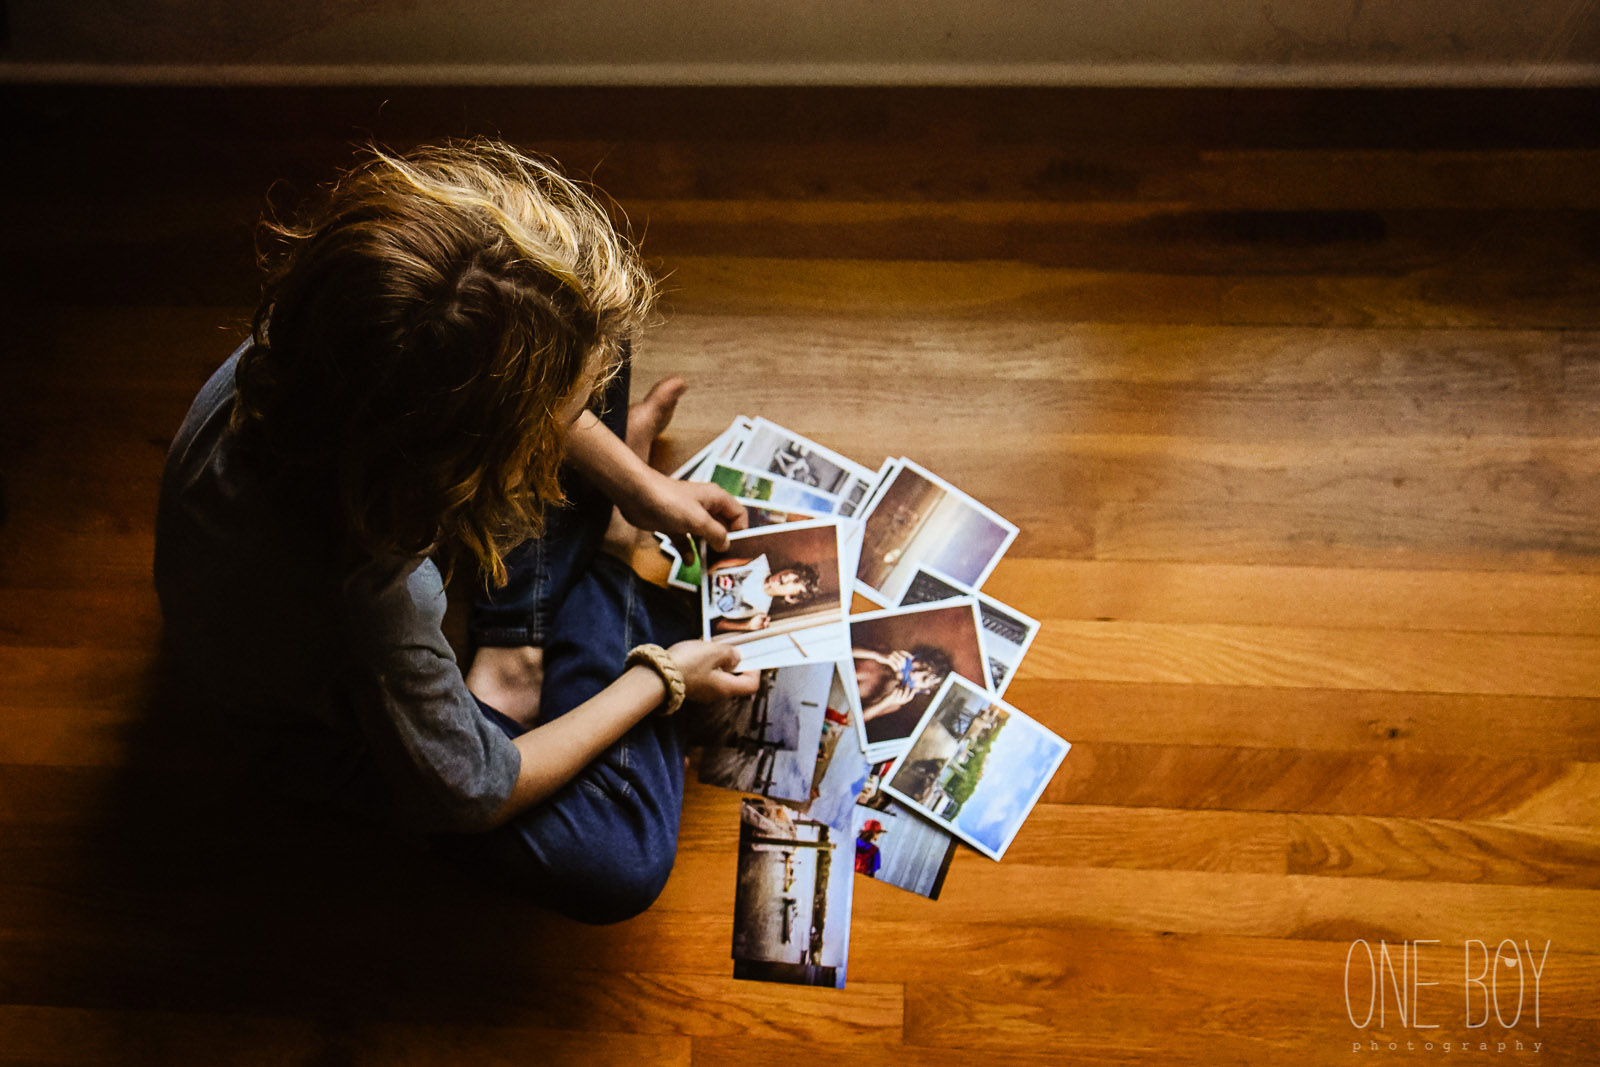 pic of boy looking at printed photos by Jan Tyler